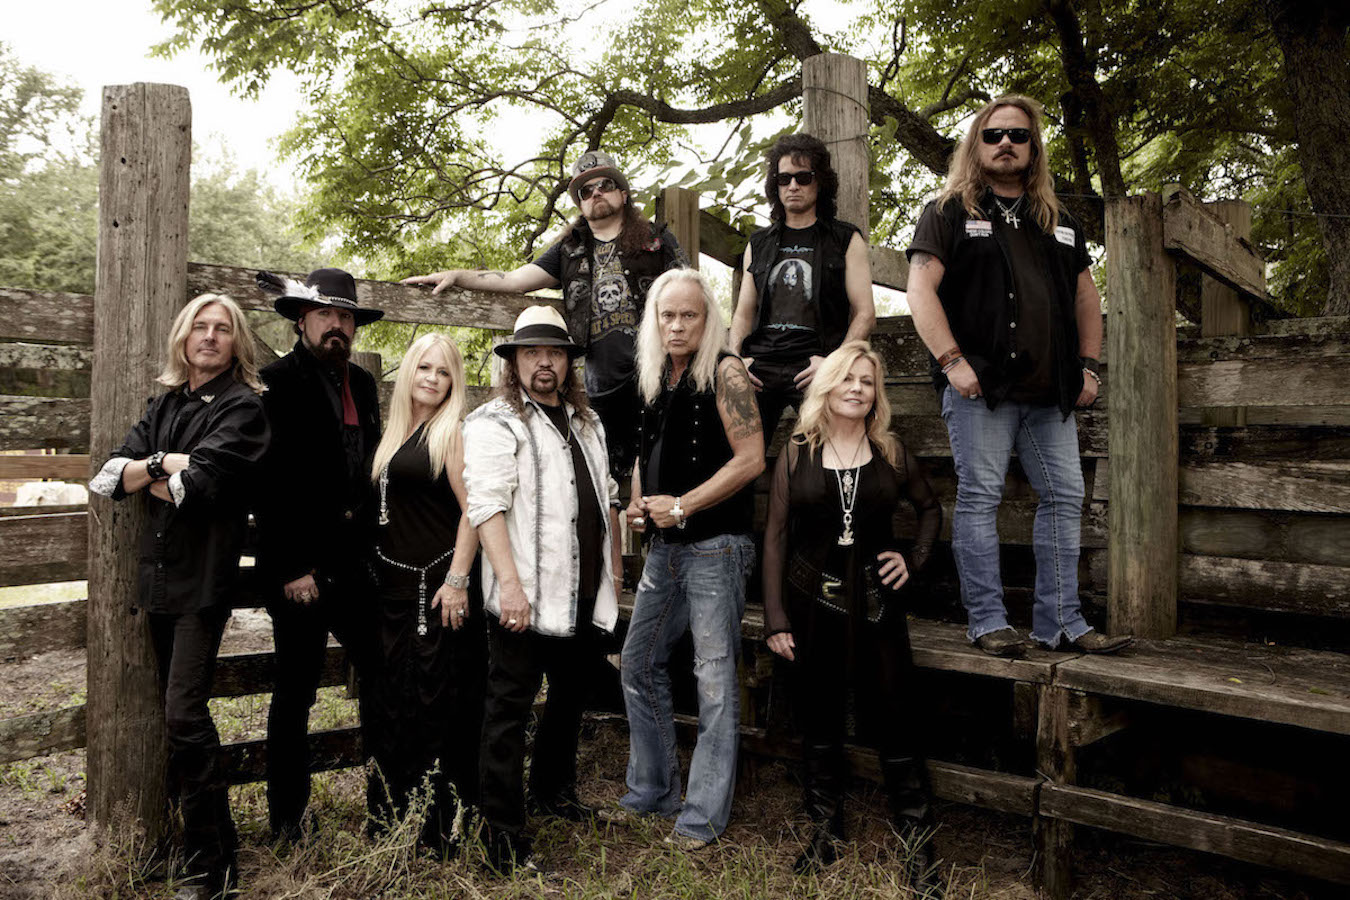 Lynyrd Skynyrd performs Tuesday at Artpark in Lewiston. The show begins at 6:30 p.m. Click for a larger image.